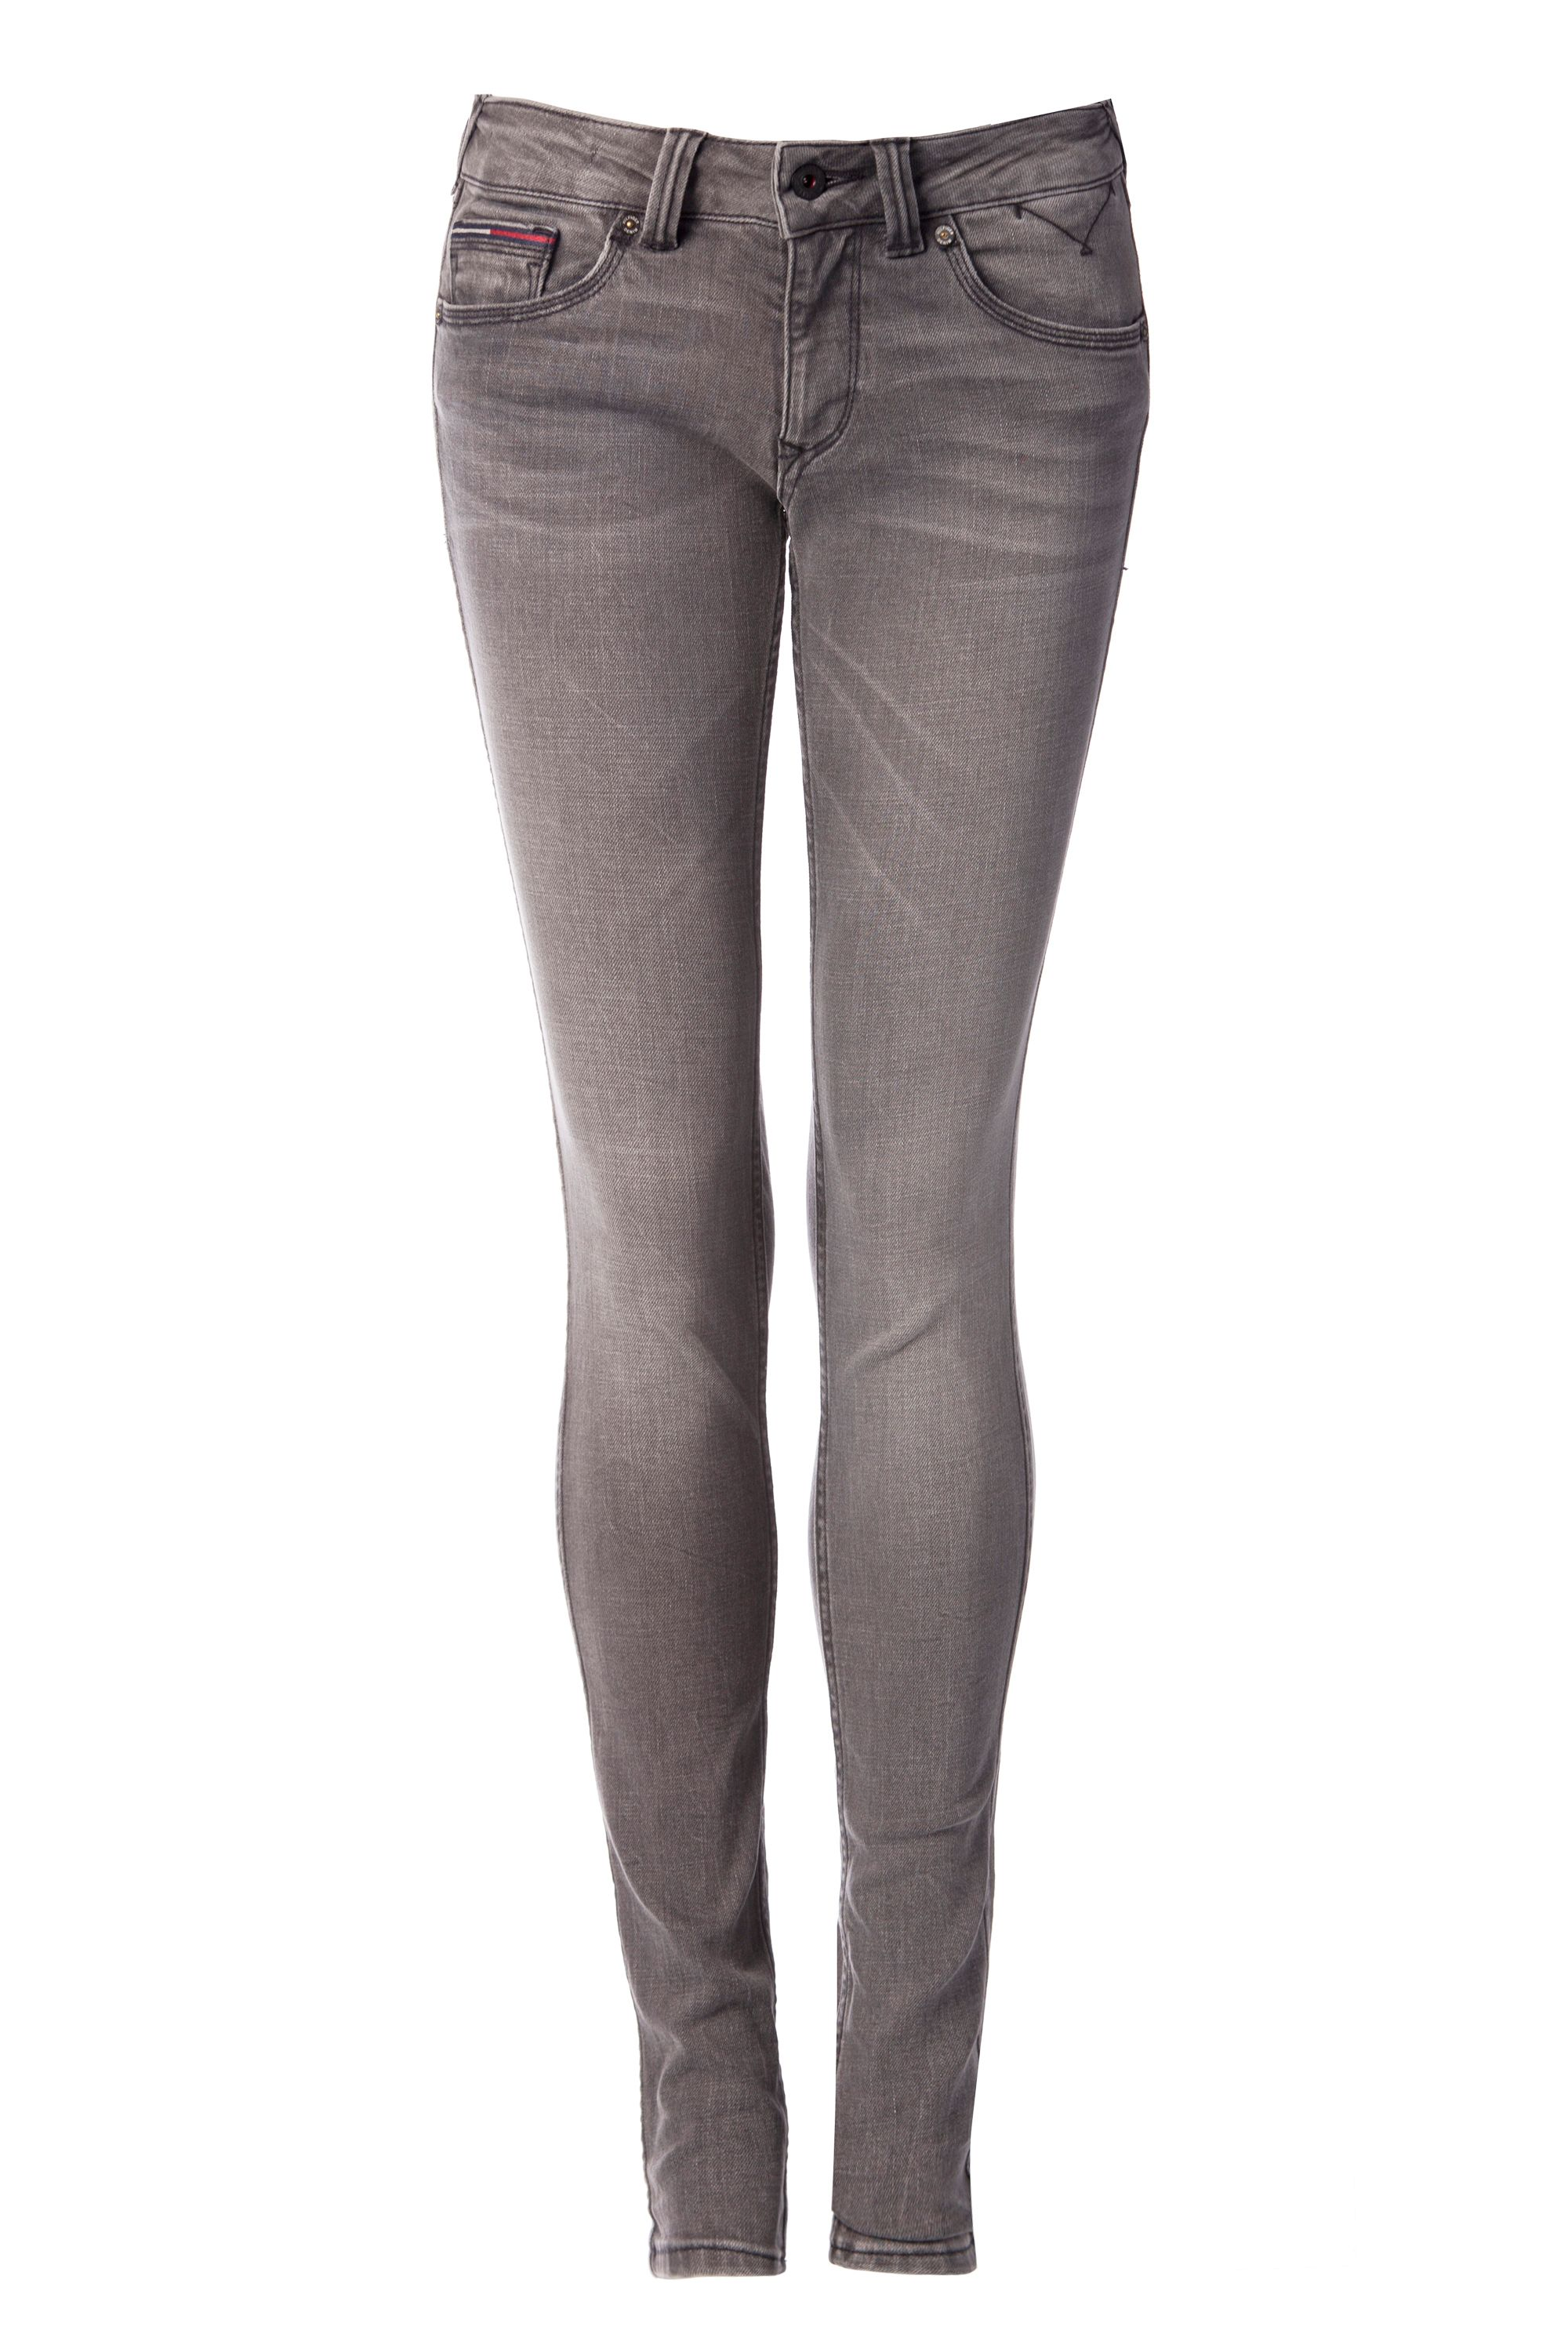 Grey Jeans For Women - Jeans Am